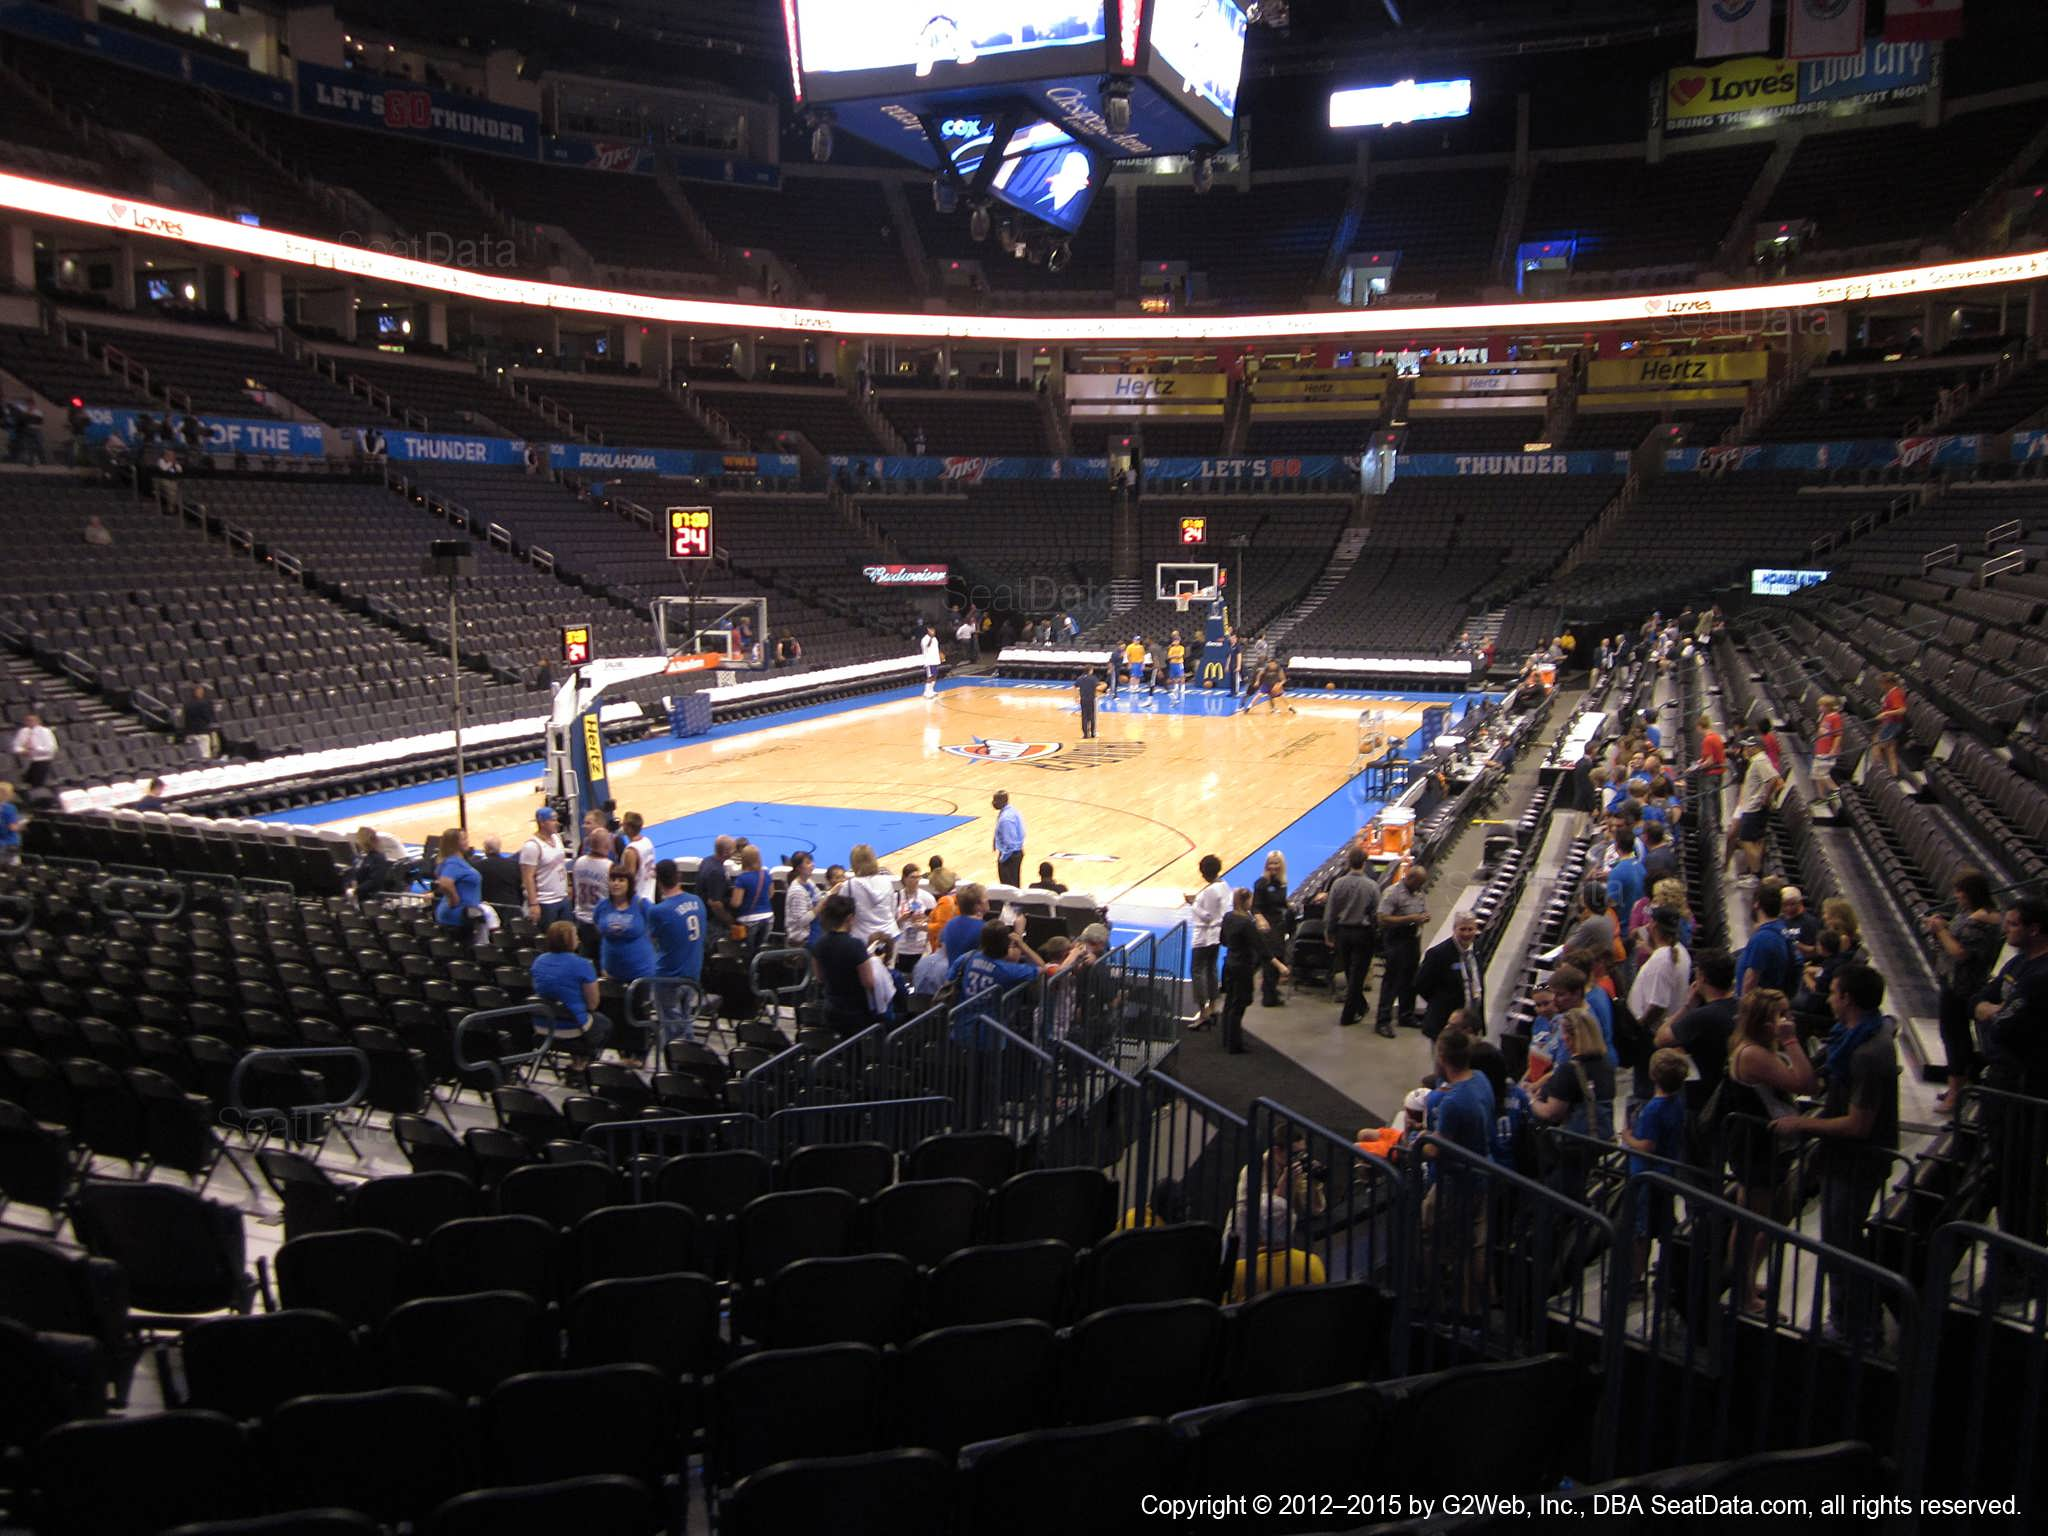 Seat view from section 119 at Chesapeake Energy Arena, home of the Oklahoma City Thunder